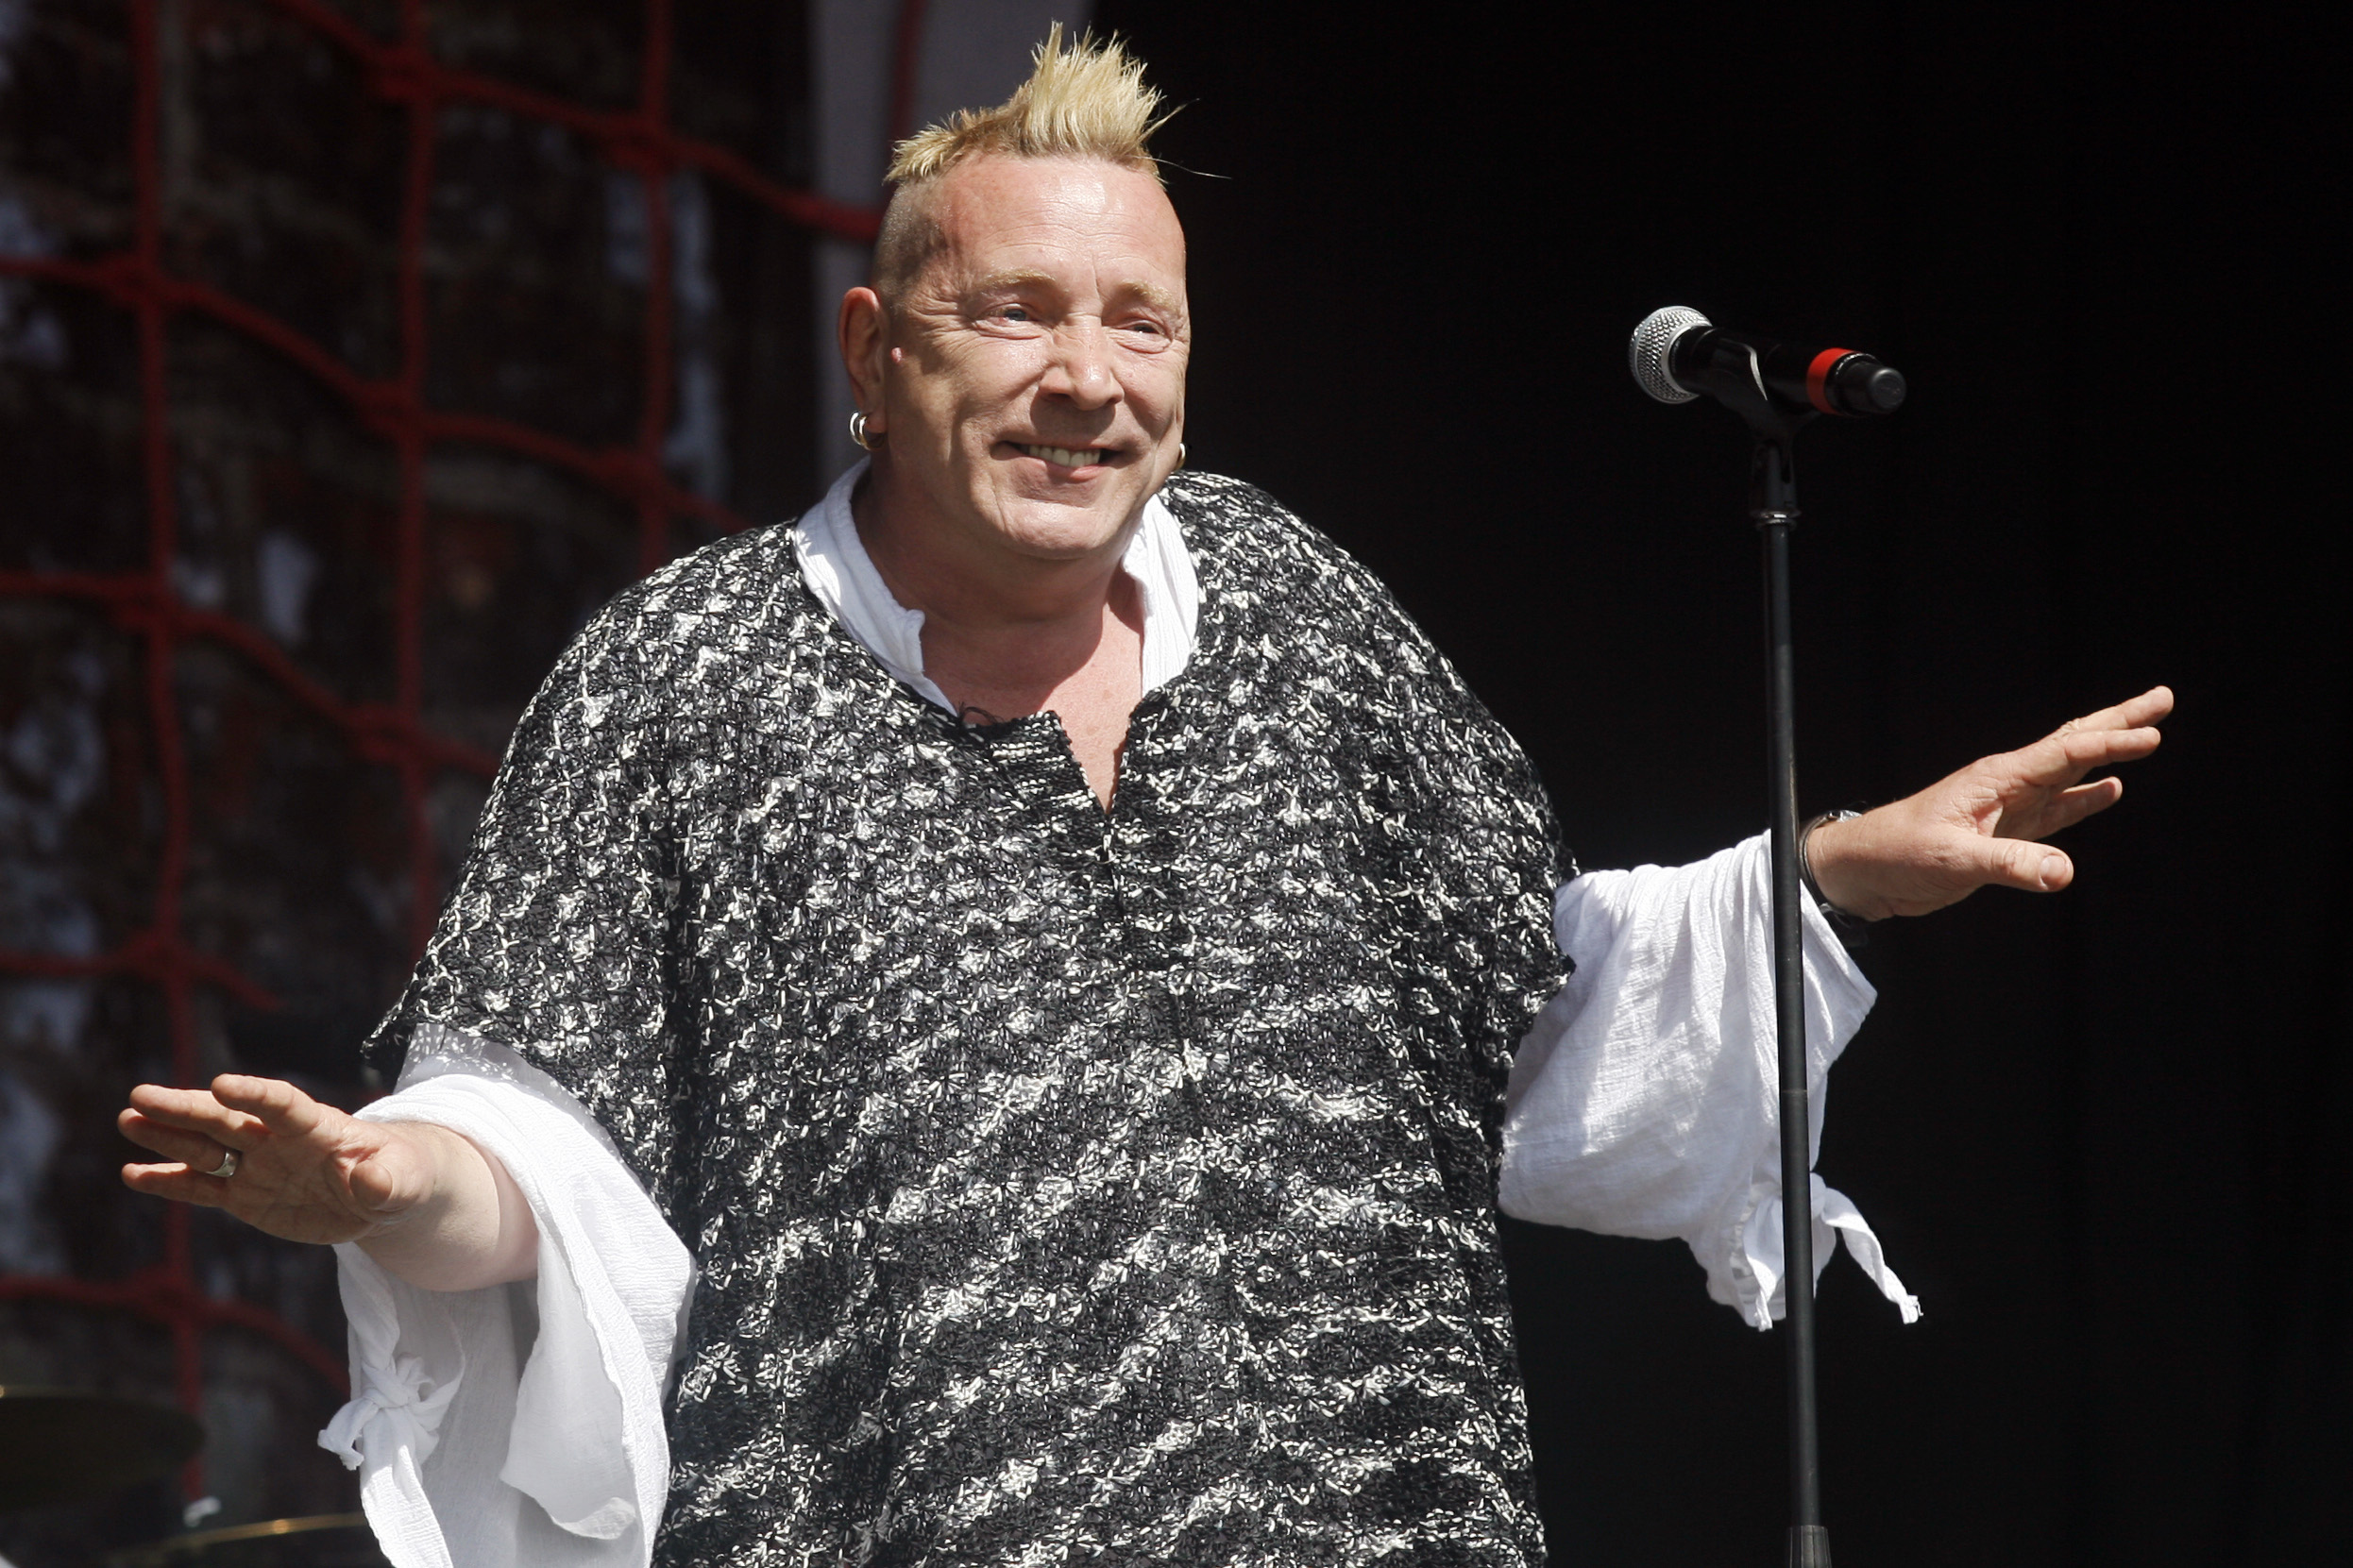 Johnny Rotten gets flea bites on groin after keeping squirrels in home